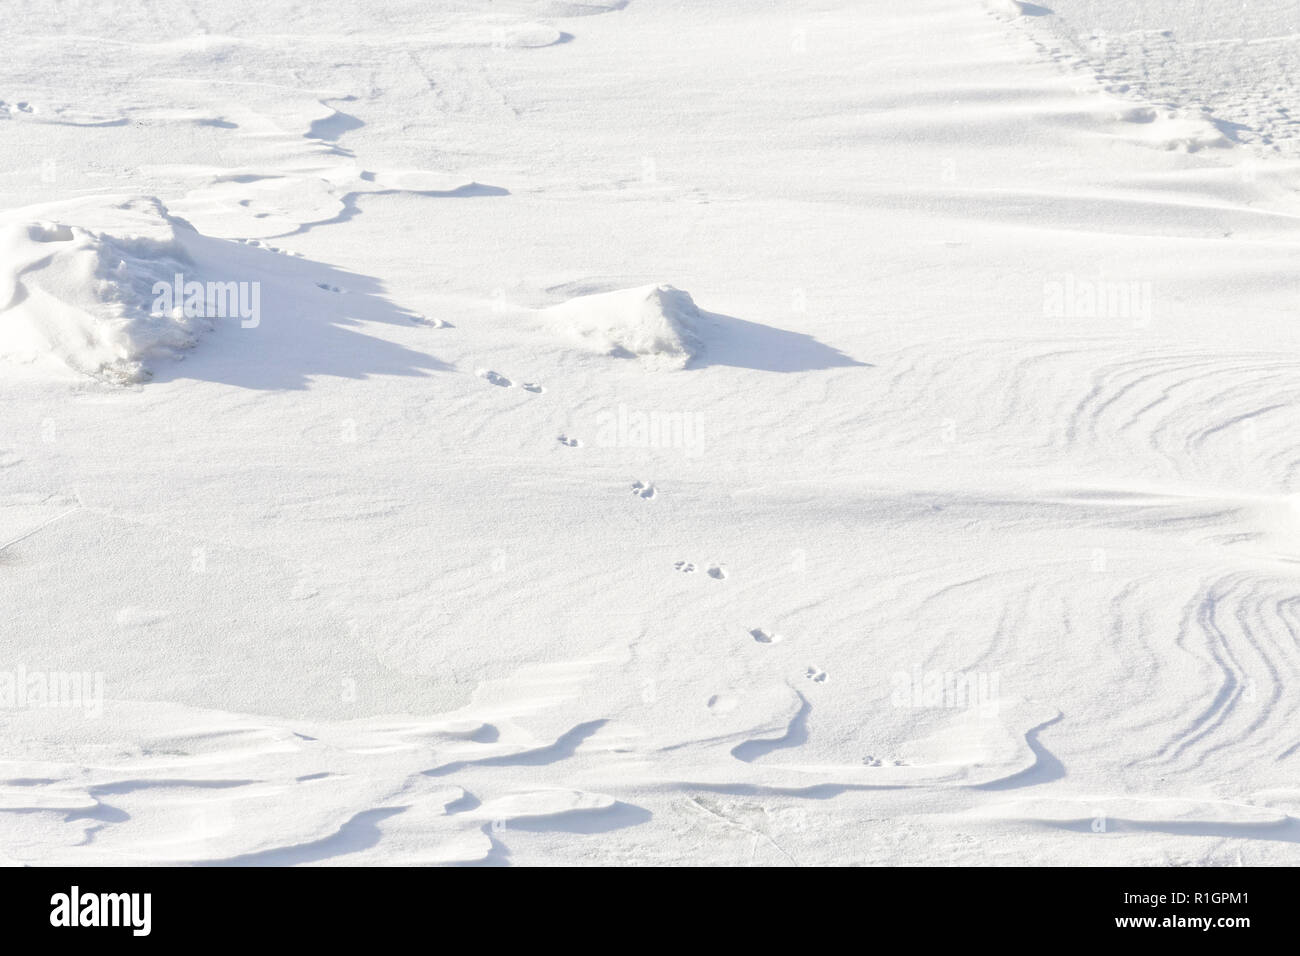 42,748.08786 close up of coyote tracks crossing walking across and in fresh rippled wavy drifted snow; long shadows - Stock Image